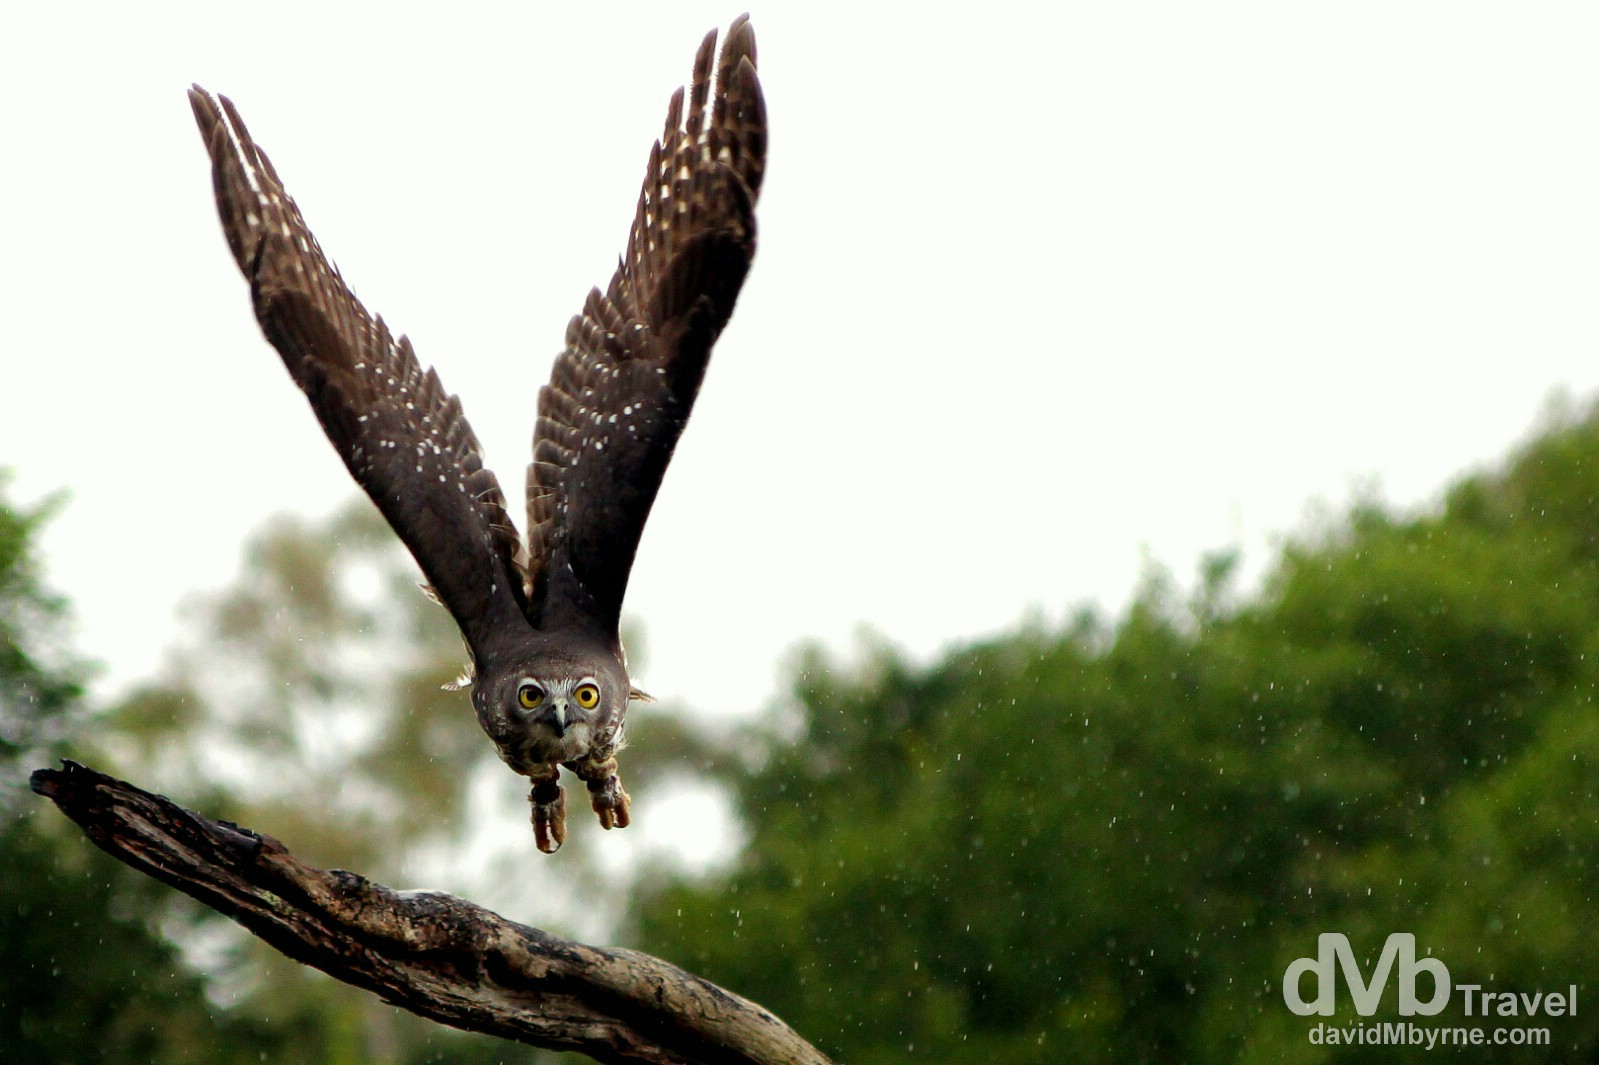 A barking owl in flight in light rain during the Birds of Prey demonstration at the Lone Pine Koala Sanctuary, Brisbane, Queensland, Australia. April 15th 2012.